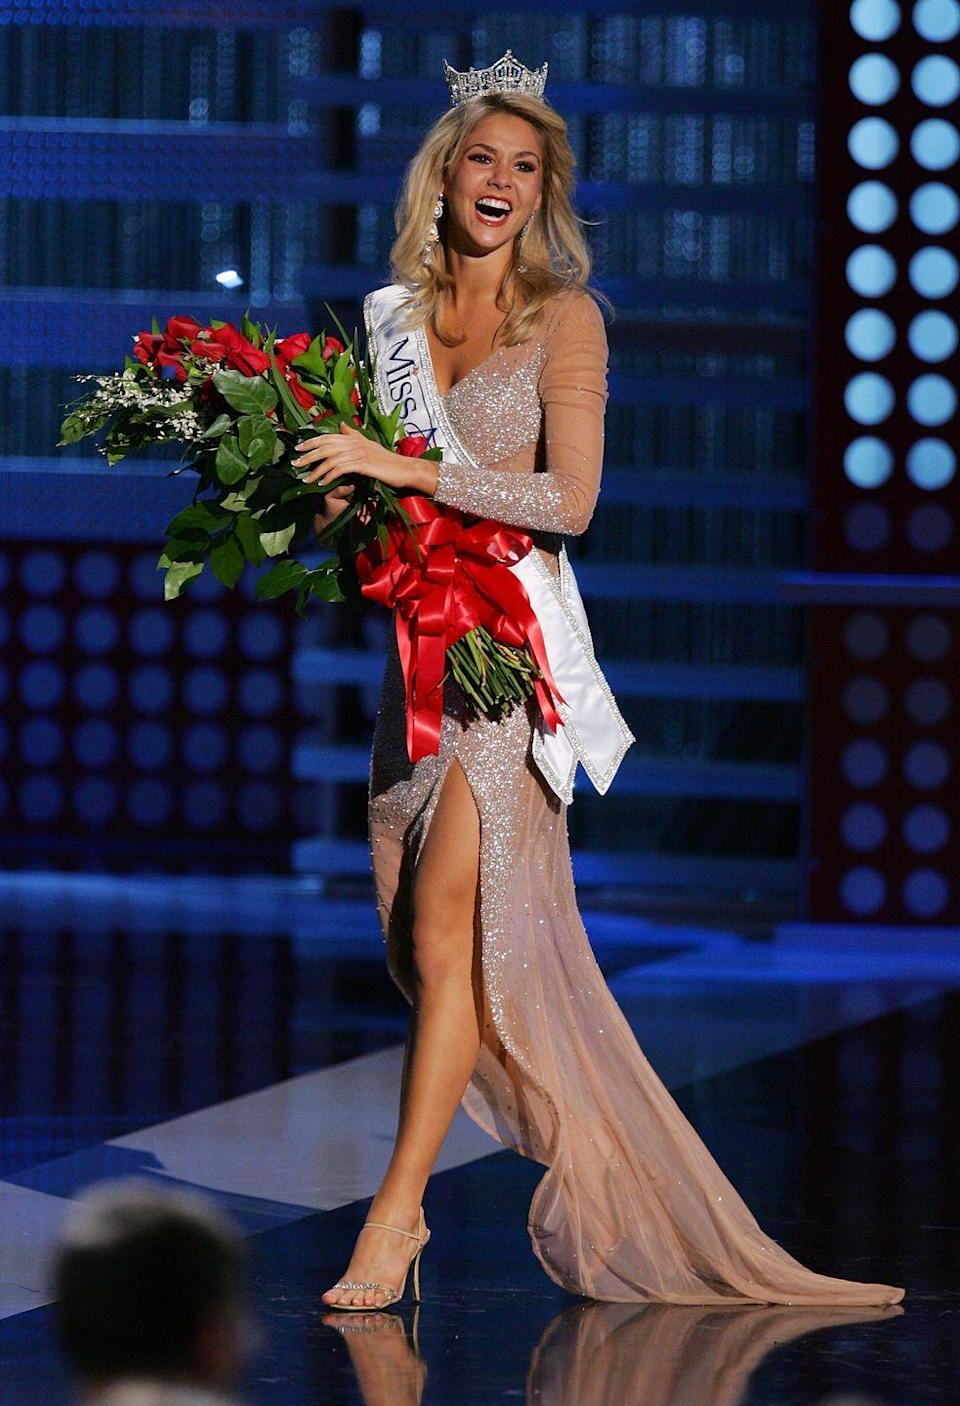 <p>Michigan's Kirsten Haglund stepped out in an embellished evening gown, which perfectly matched the crown she won. </p>